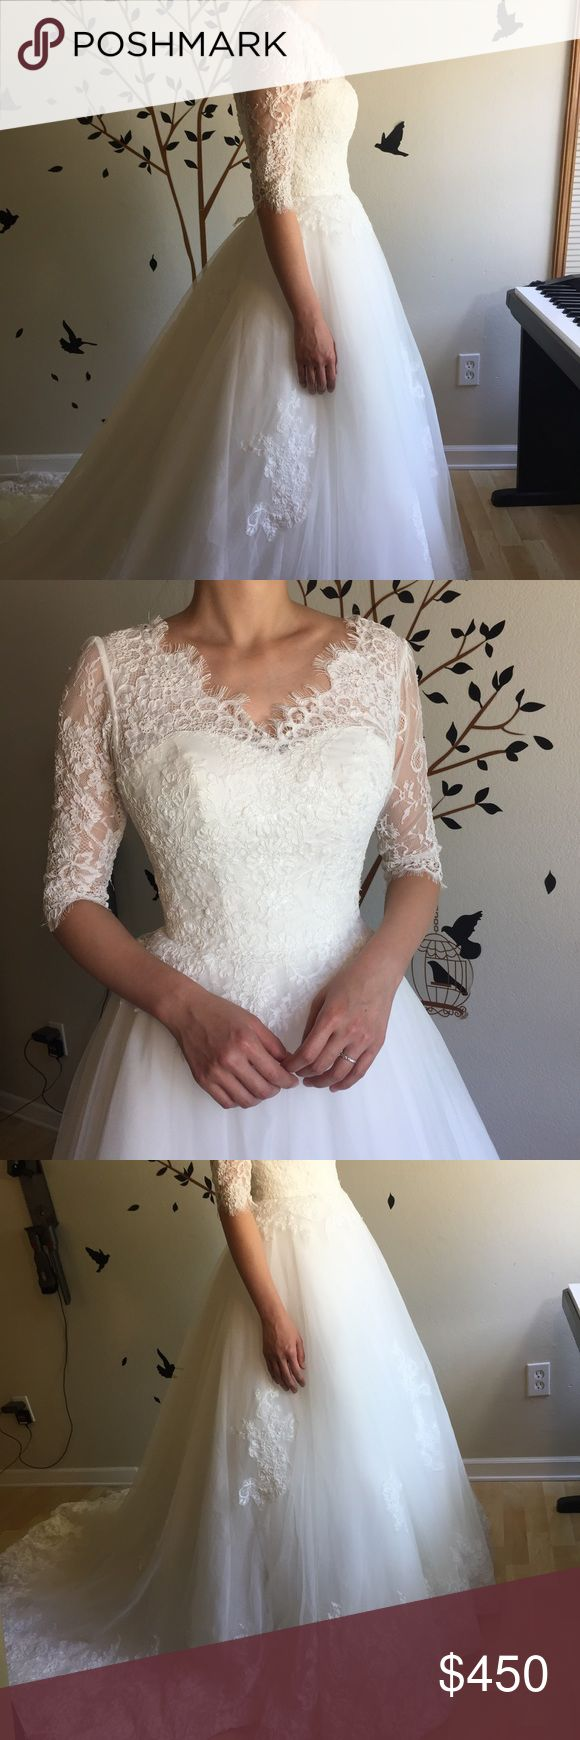 """1/2 sleeve lace wedding dress gown Very good quality, great  condition. Lace up back, good for size s m l model:    Height 5""""6                Weight 120 lbs Dresses Wedding"""